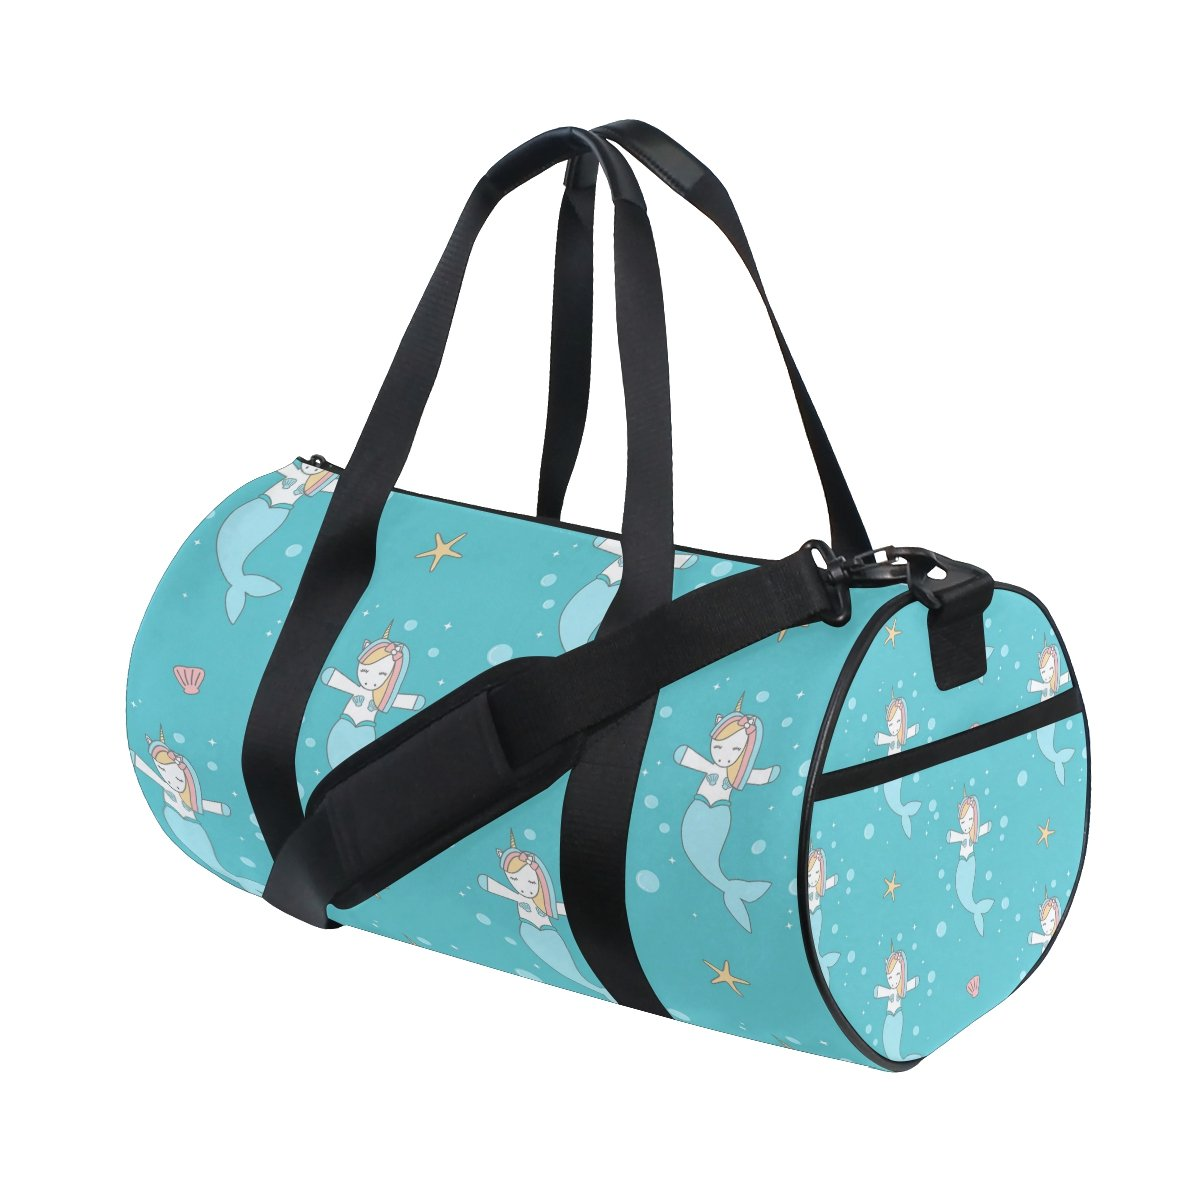 Unicorn Mermaid In The Sea Duffle Bag Sports gym Bag Luggage Travel Bag with Shoulder Strap for Men and Women